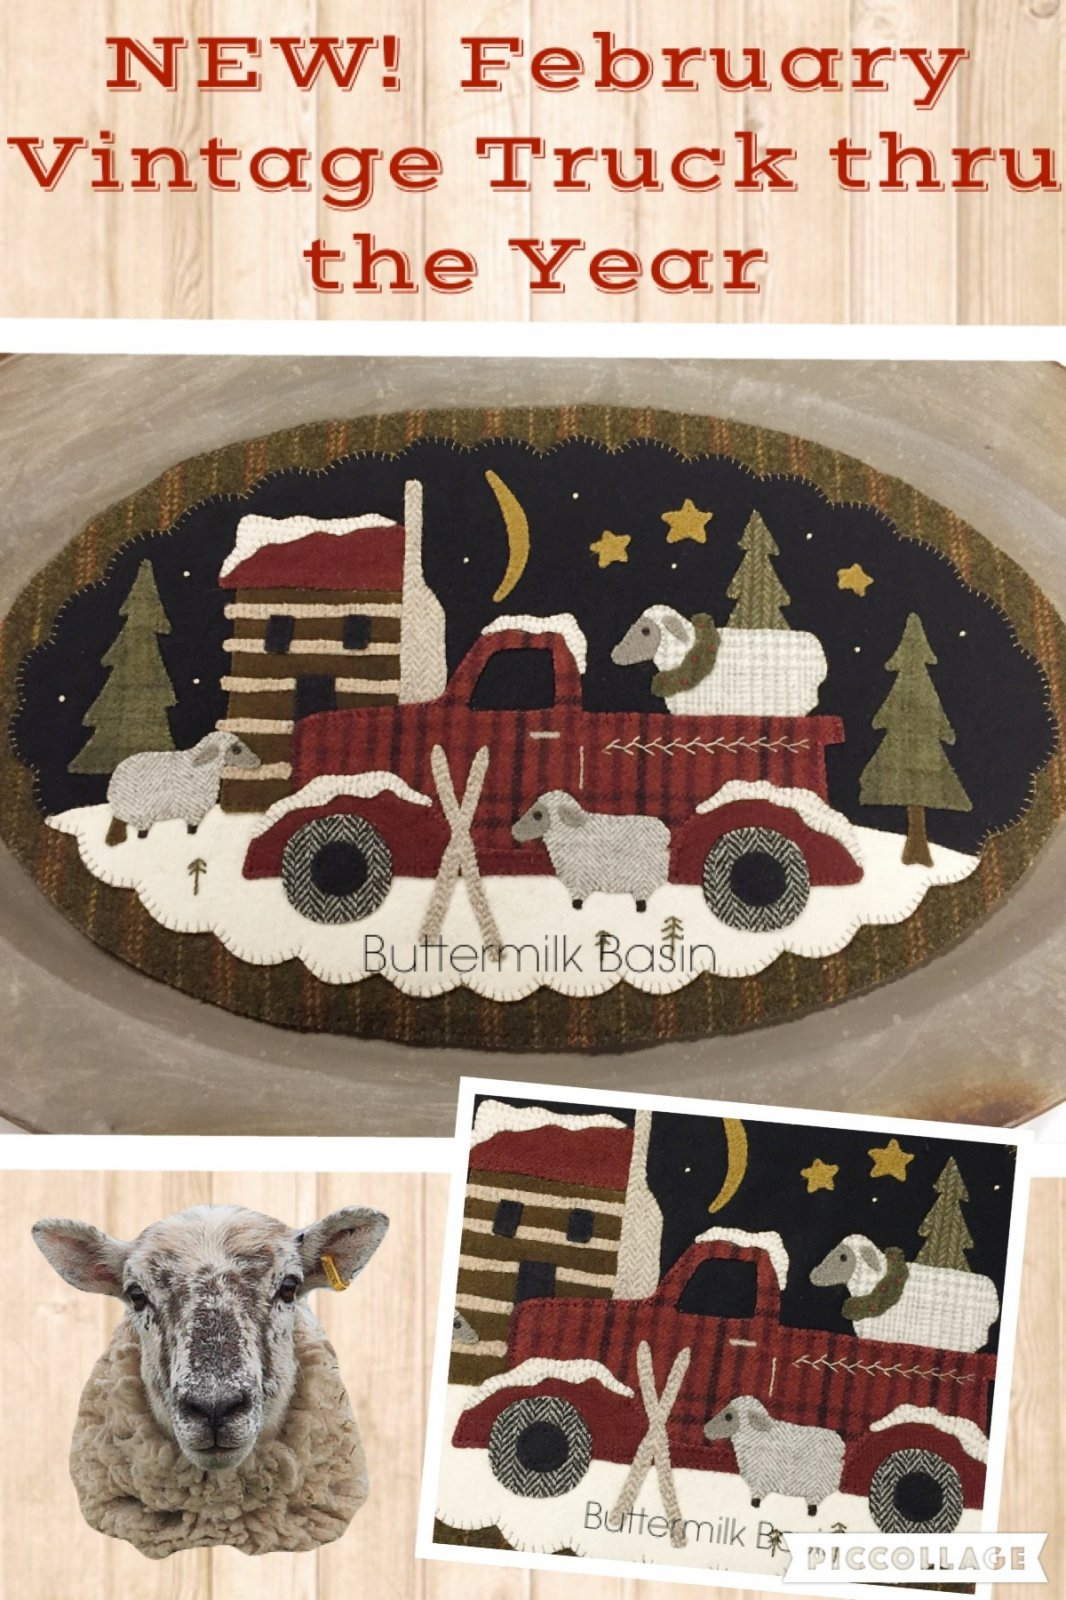 Vintage Trucks thru the Year * February Pattern